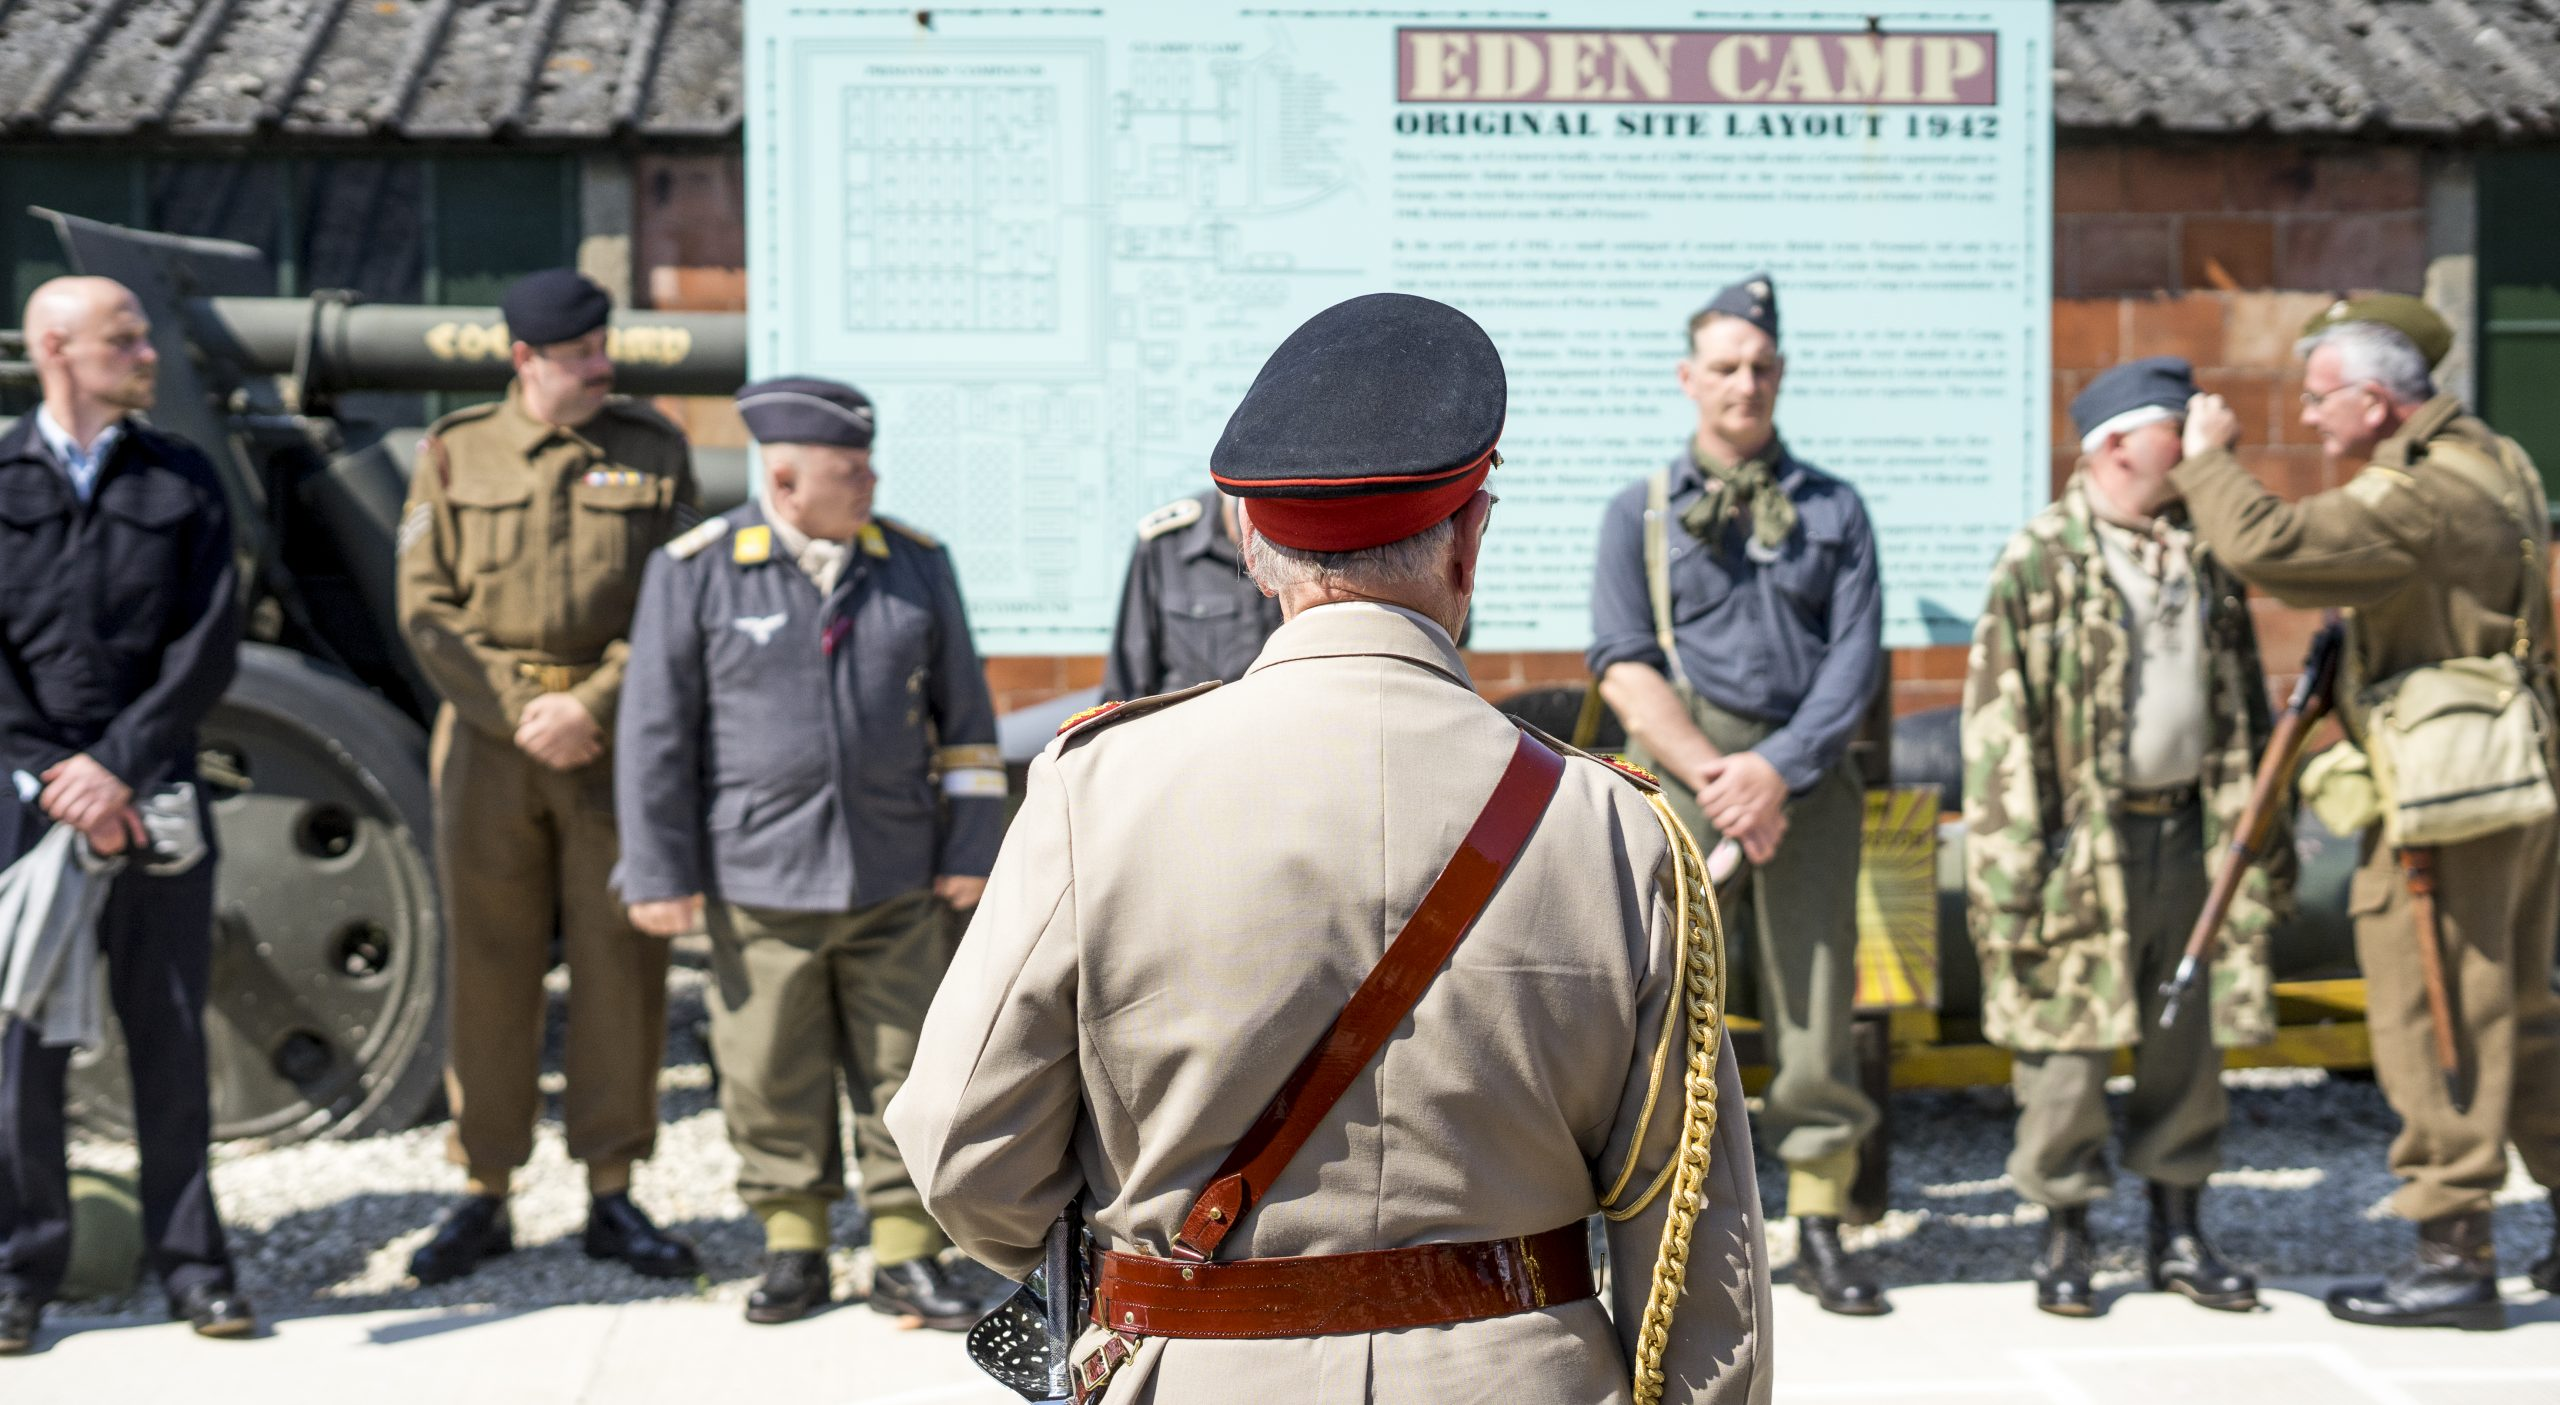 war re-enactment soldiers at Eden camp